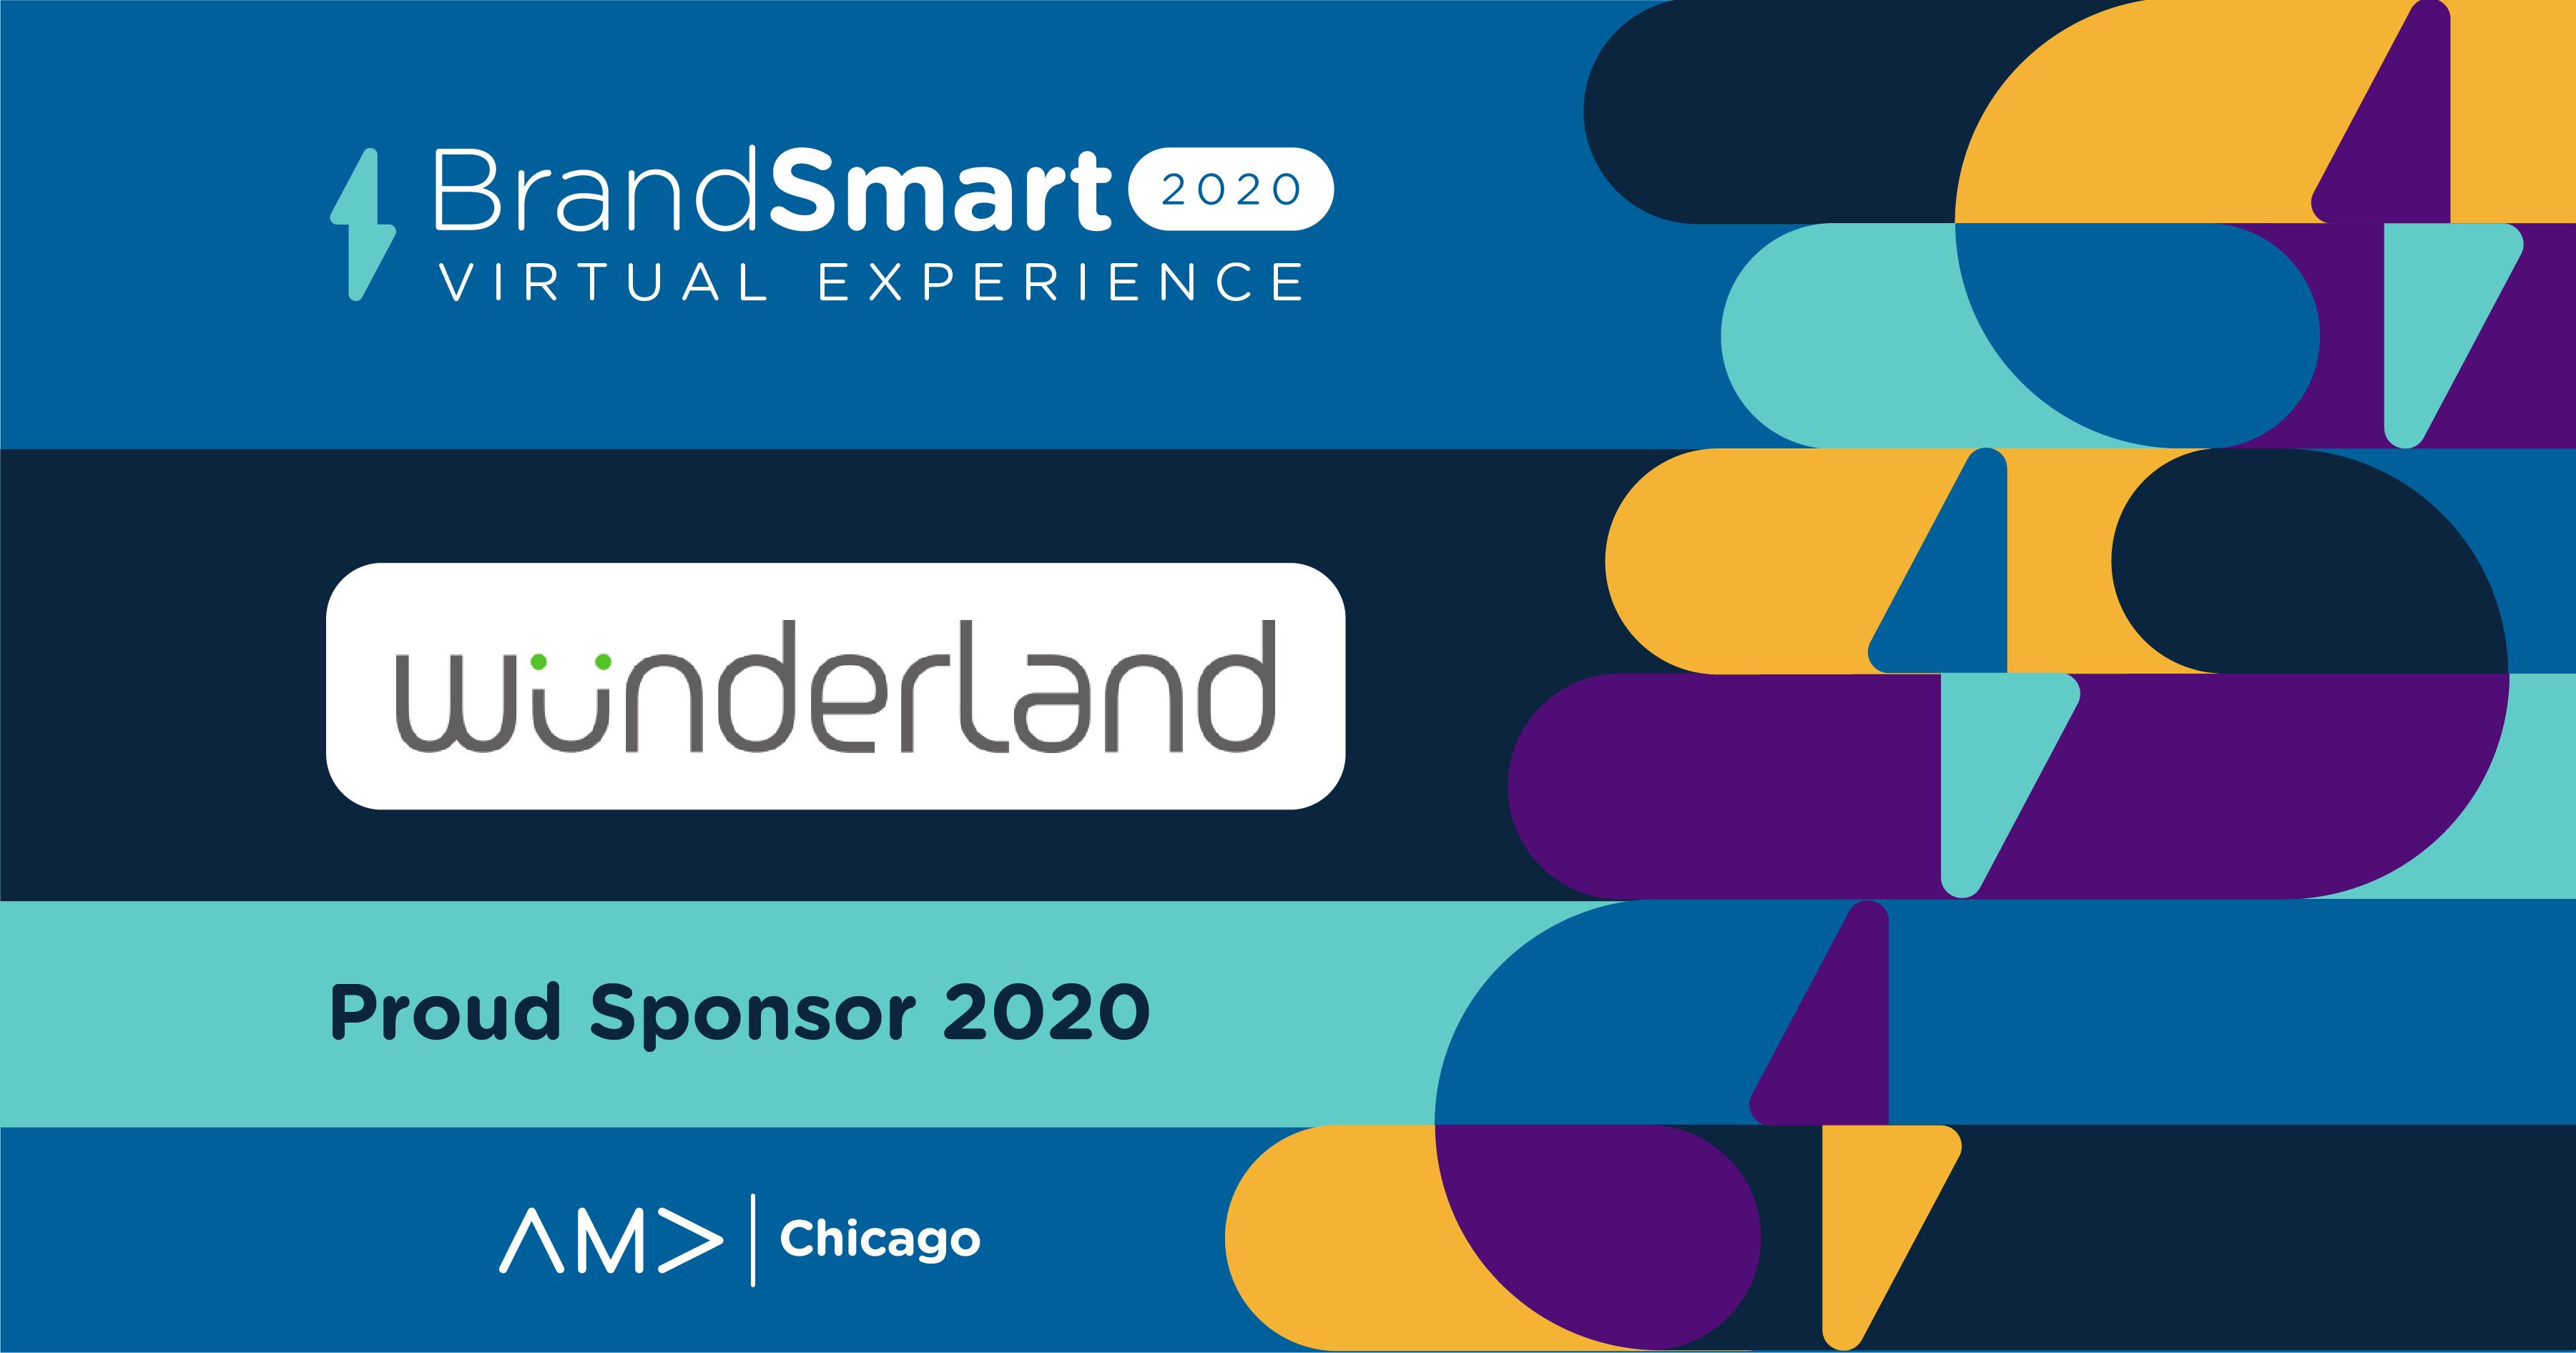 Reimagining: Key Takeaways from AMA Chicago's BrandSmart Conference